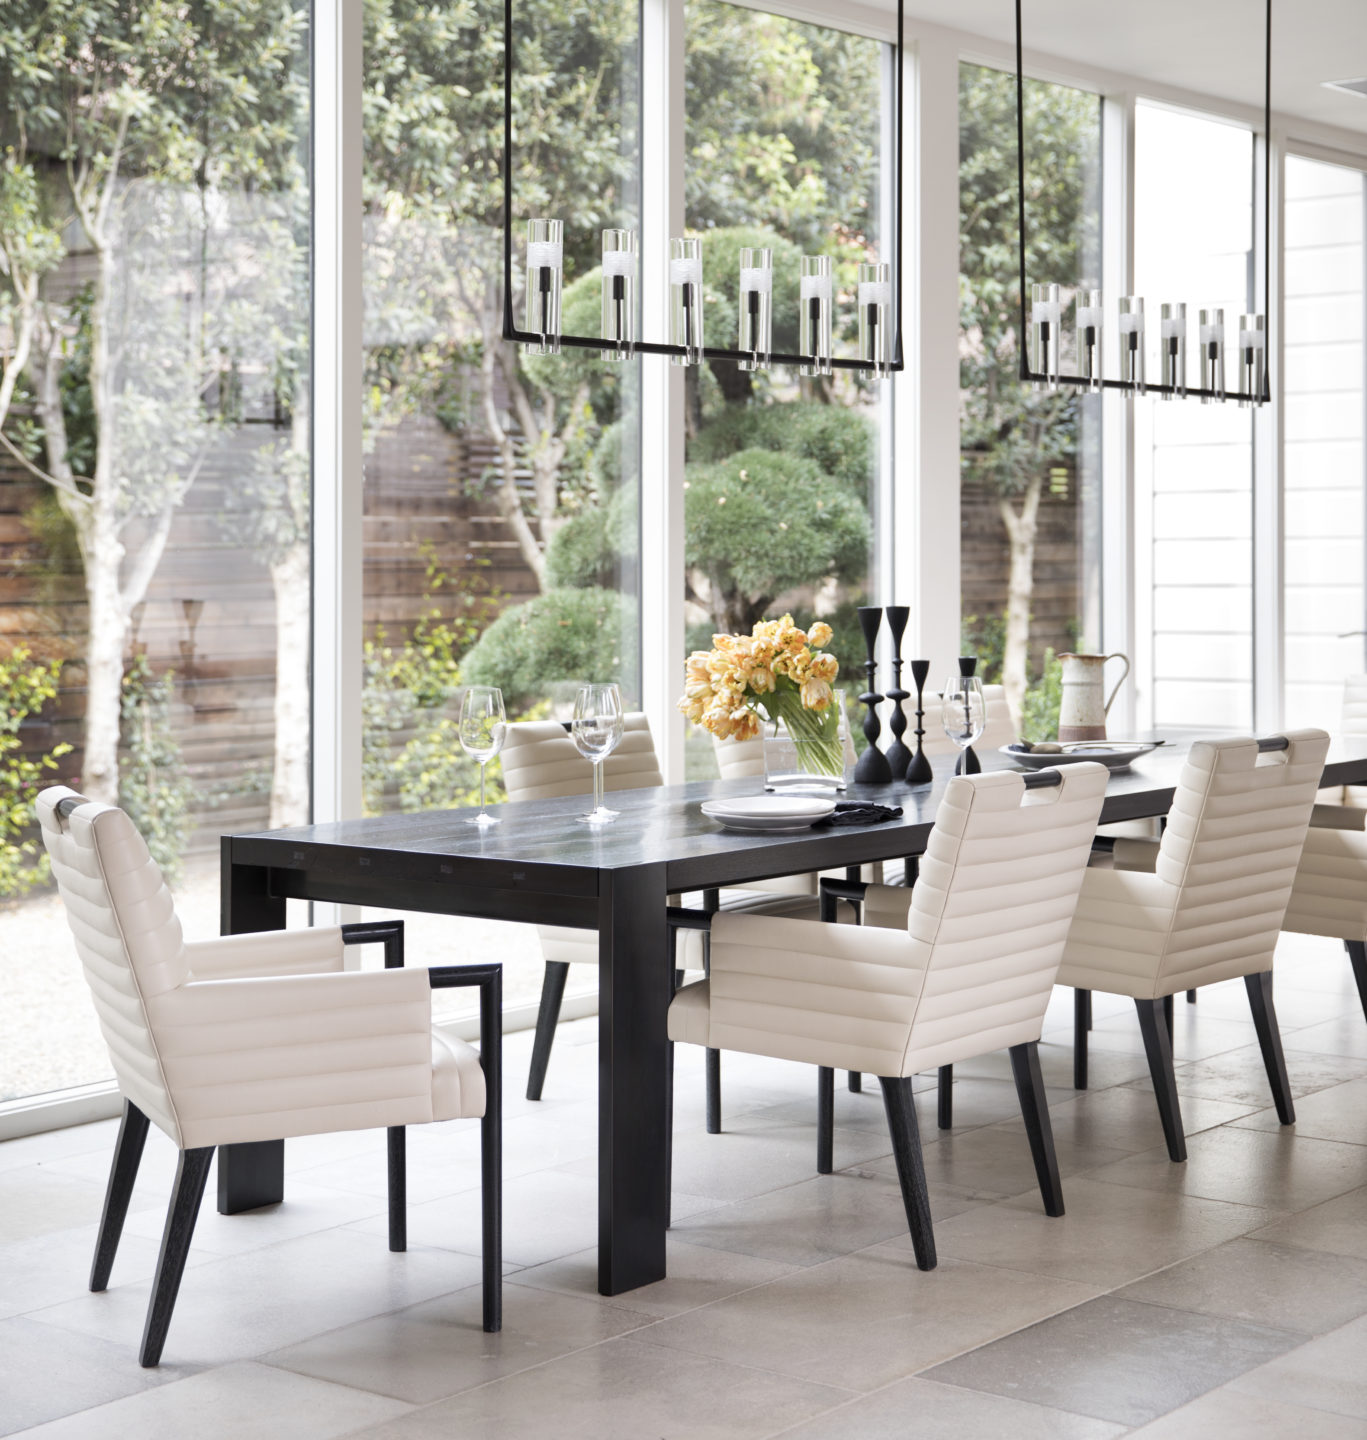 Jennifer_robins_interiors_projects_downtown_sonoma_1_dining_room_table_DR